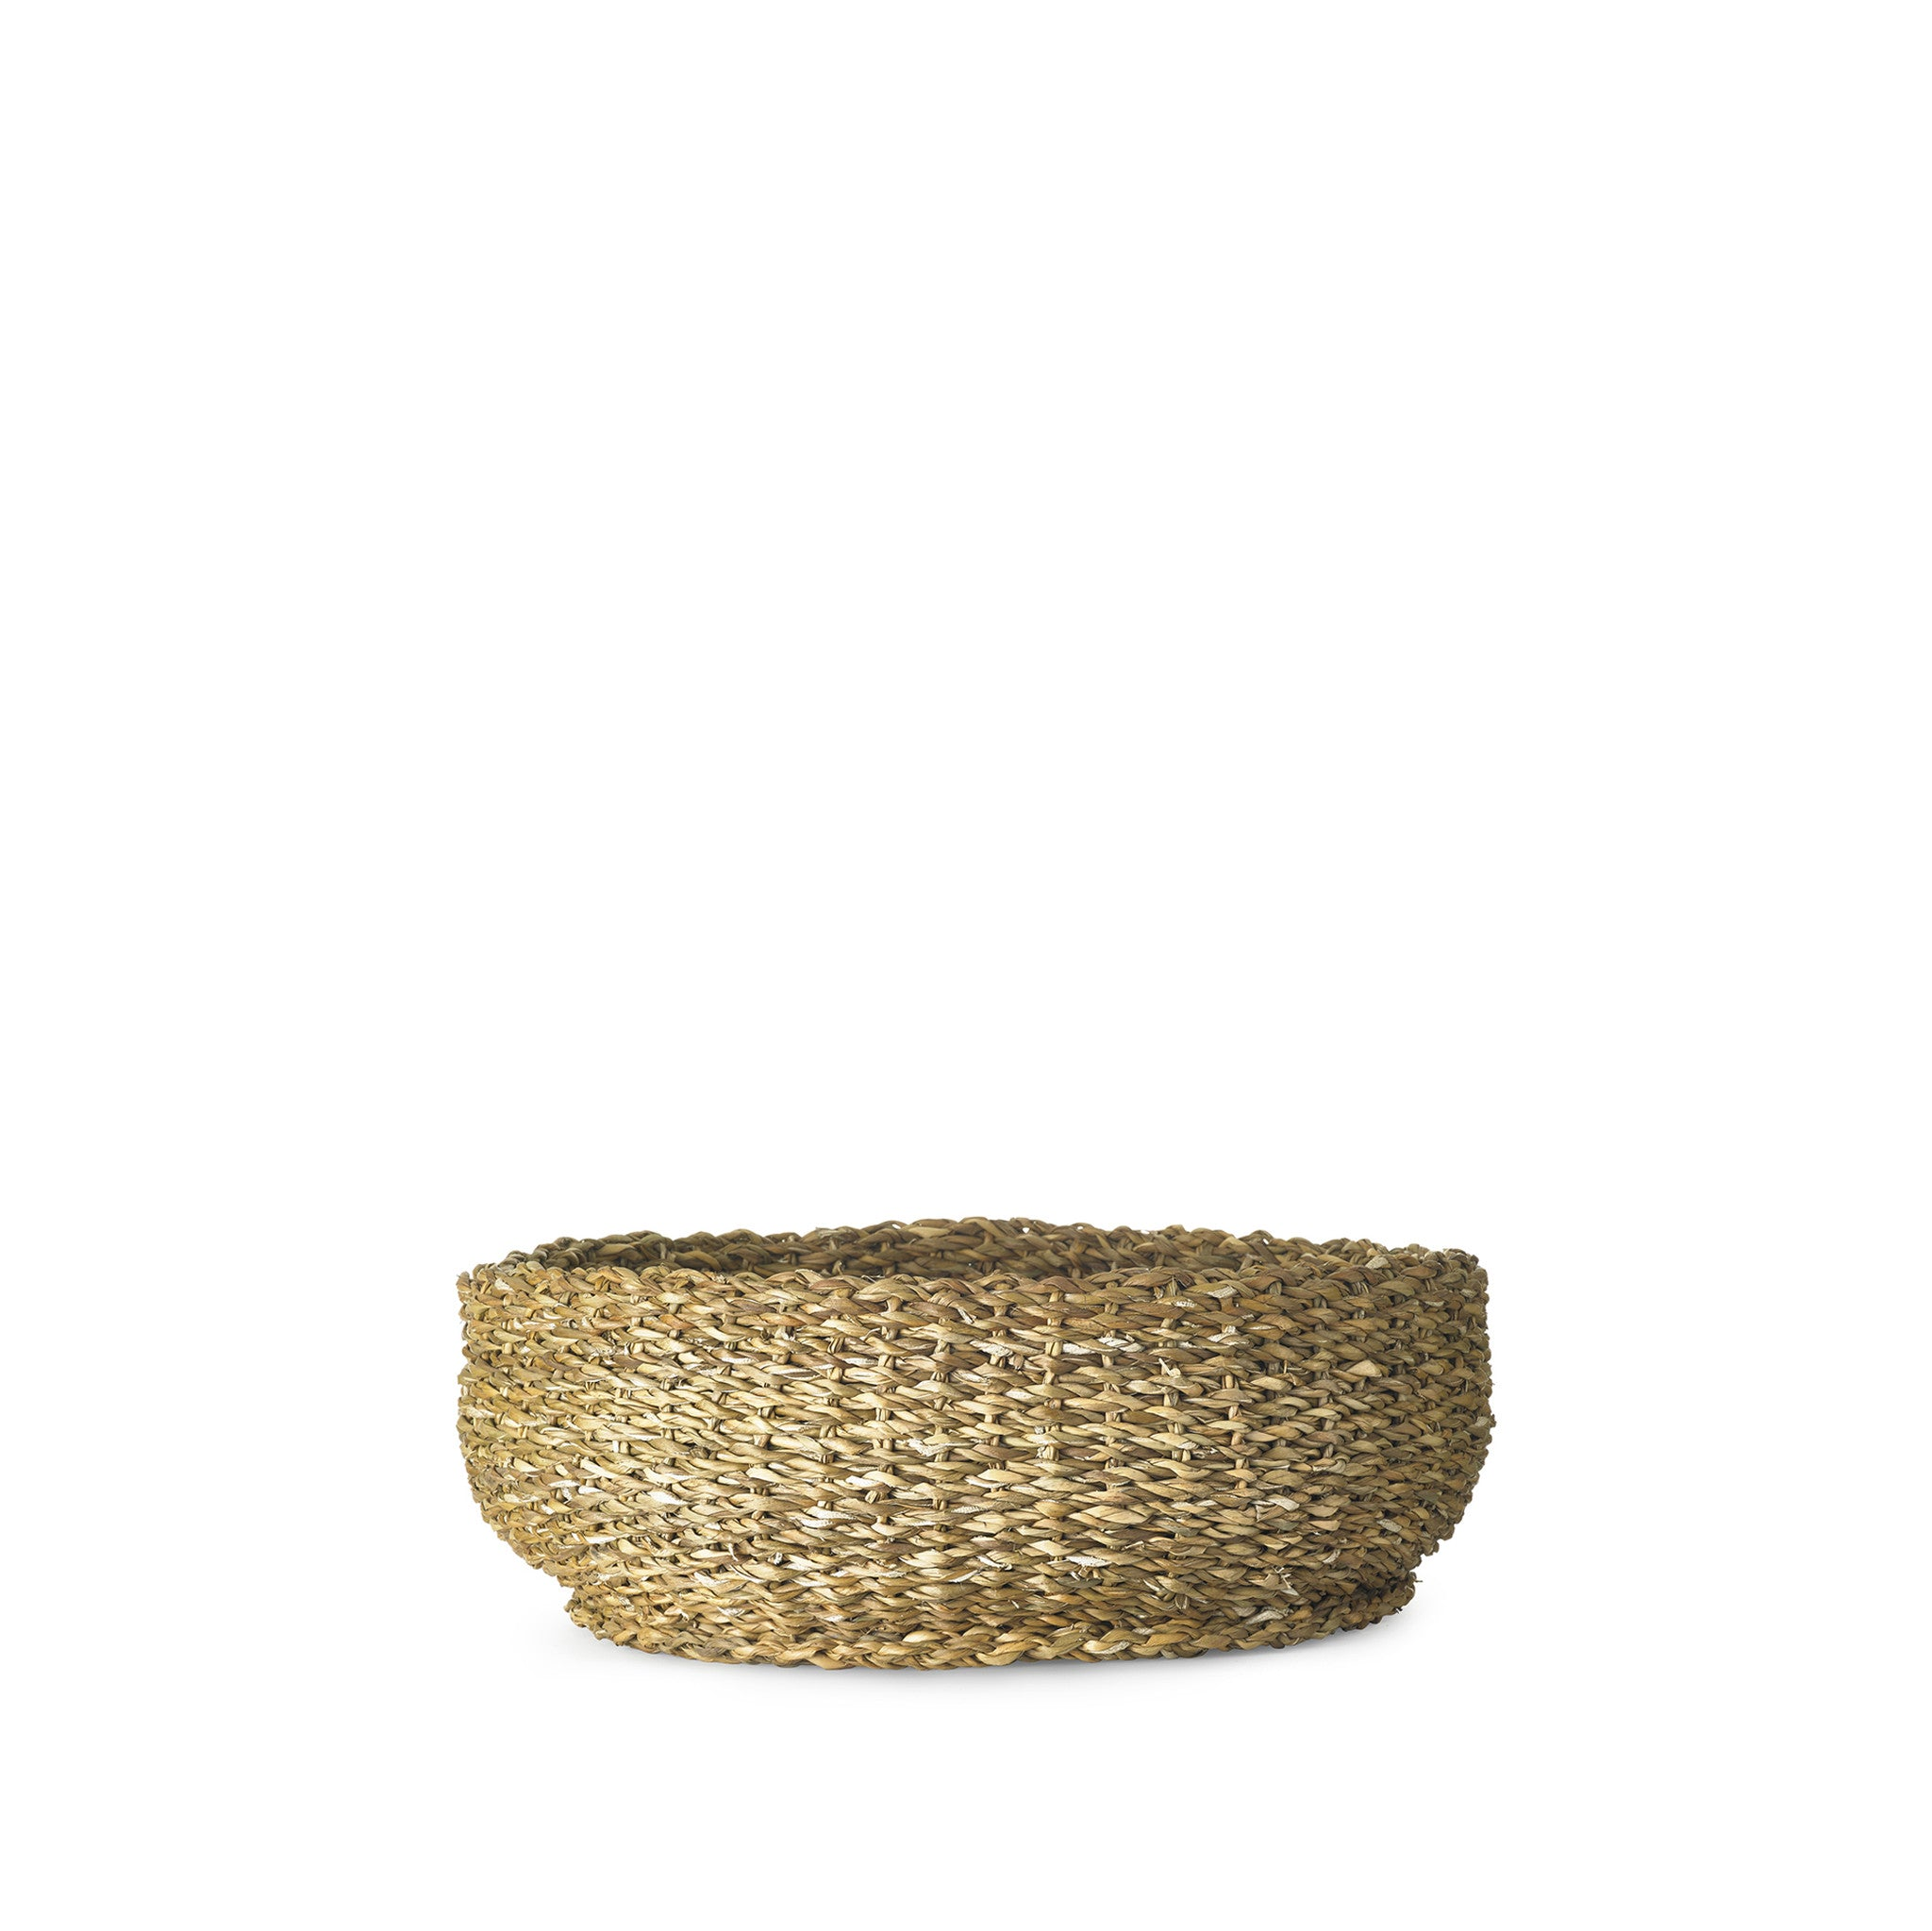 Seagrass and Coconut Fibre Basket, Medium